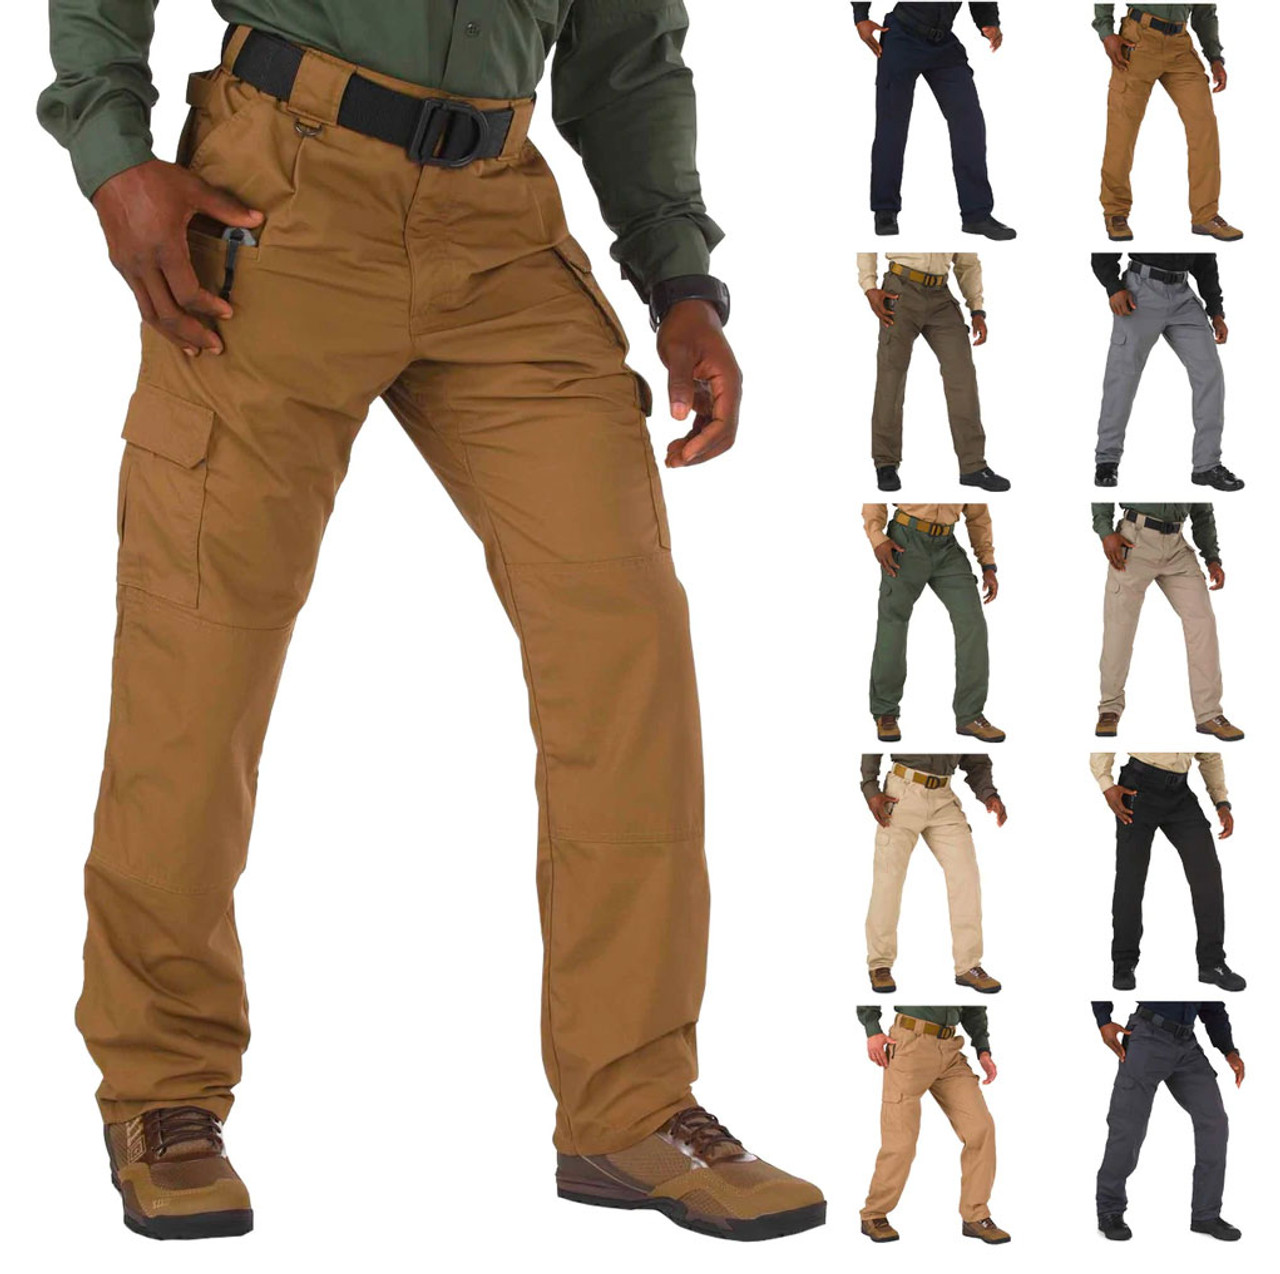 ade012042ee89 5.11 Tactical Poly/Cotton Taclite Pro Pants | Free Shipping on All Orders